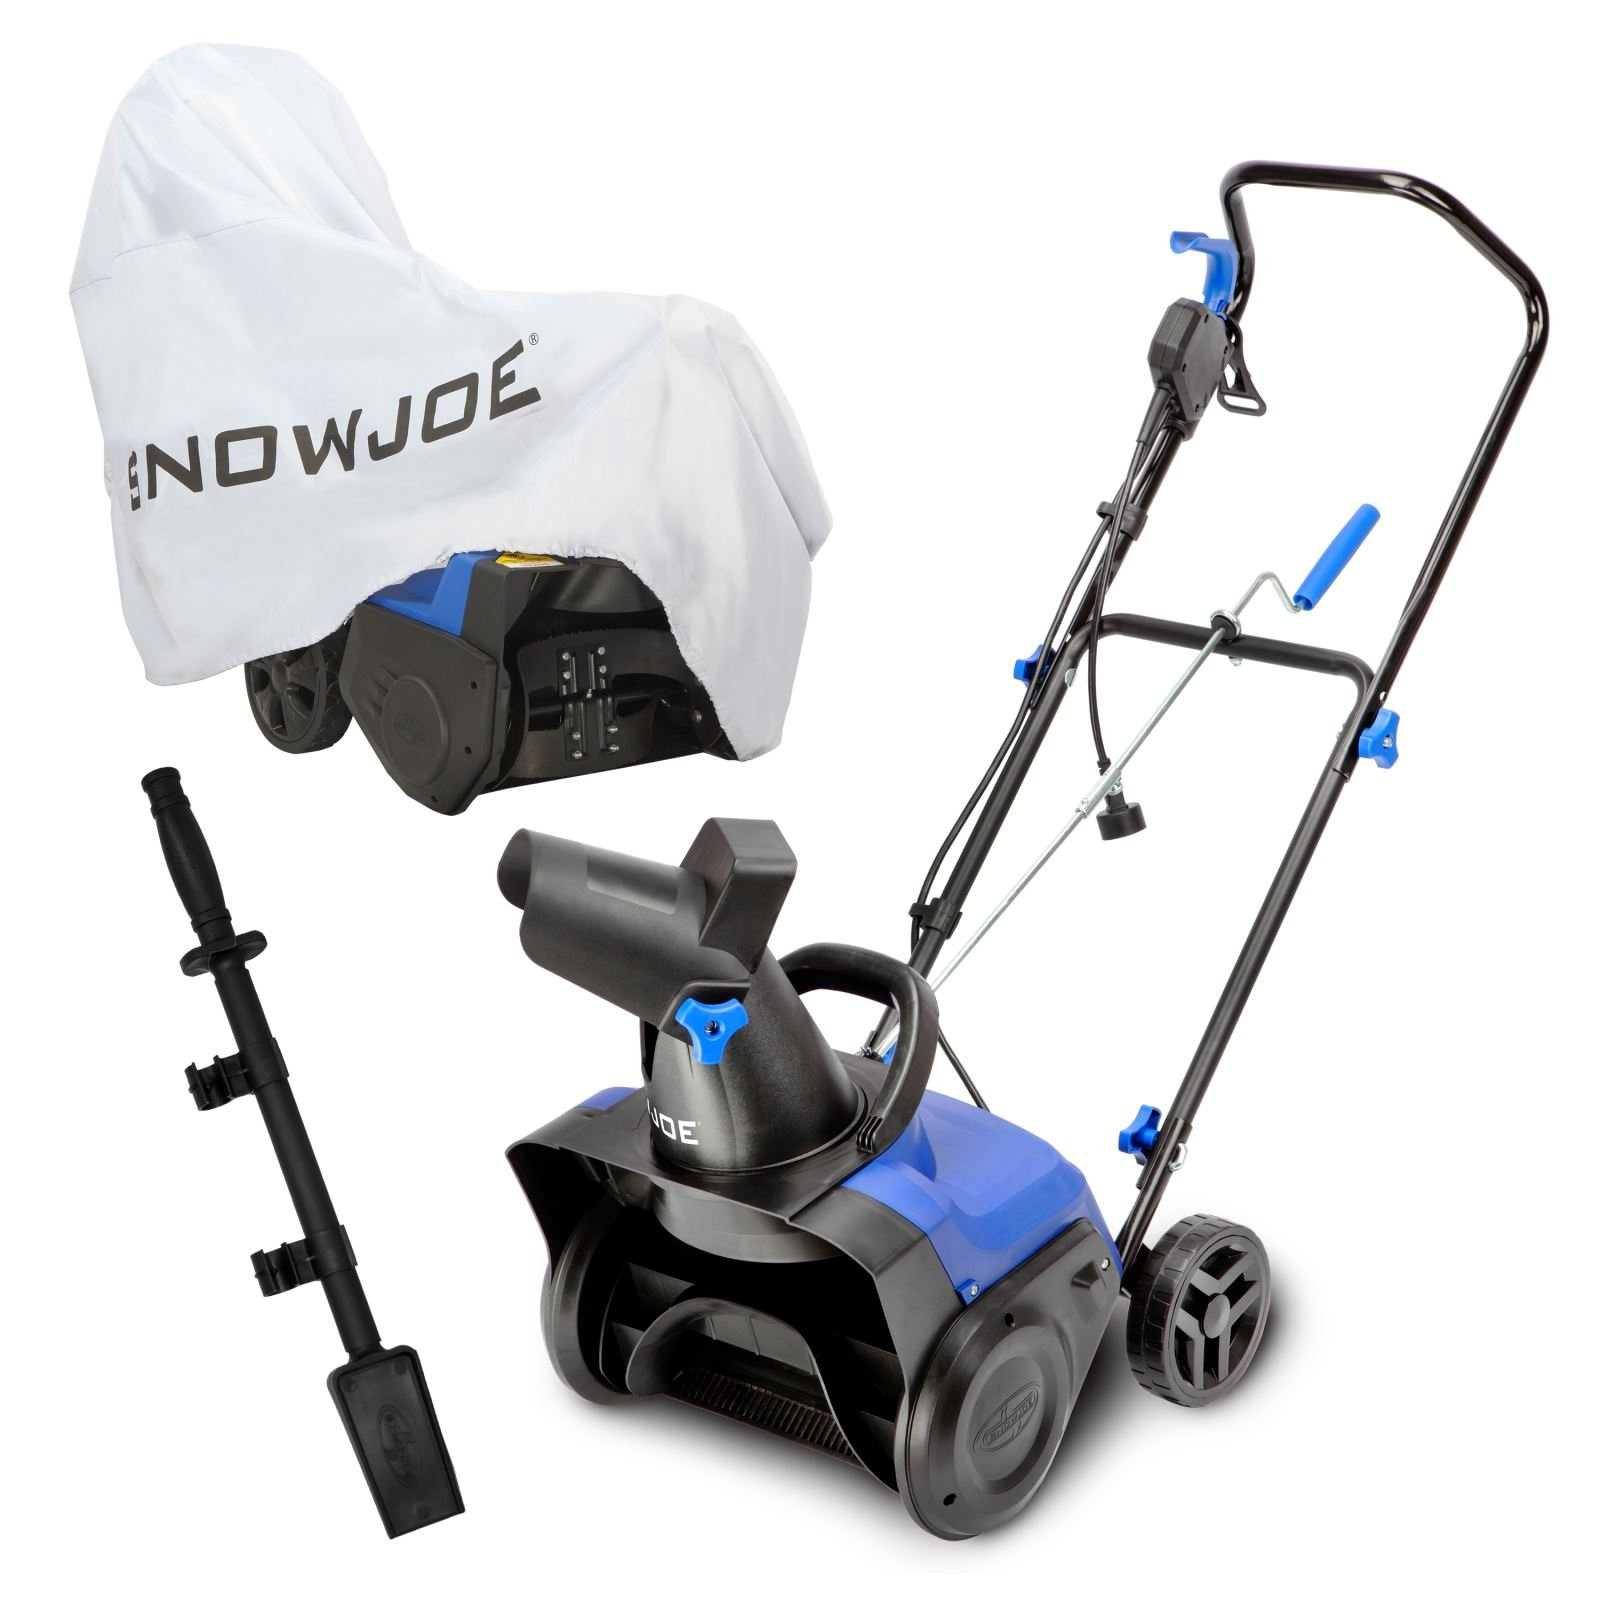 Snow Joe SJ615E-BDL Electric Single Stage Snow Blower Bundle 15-Inch · 11 Amp Motor Snow Blower · Cover · Clean-out Tool